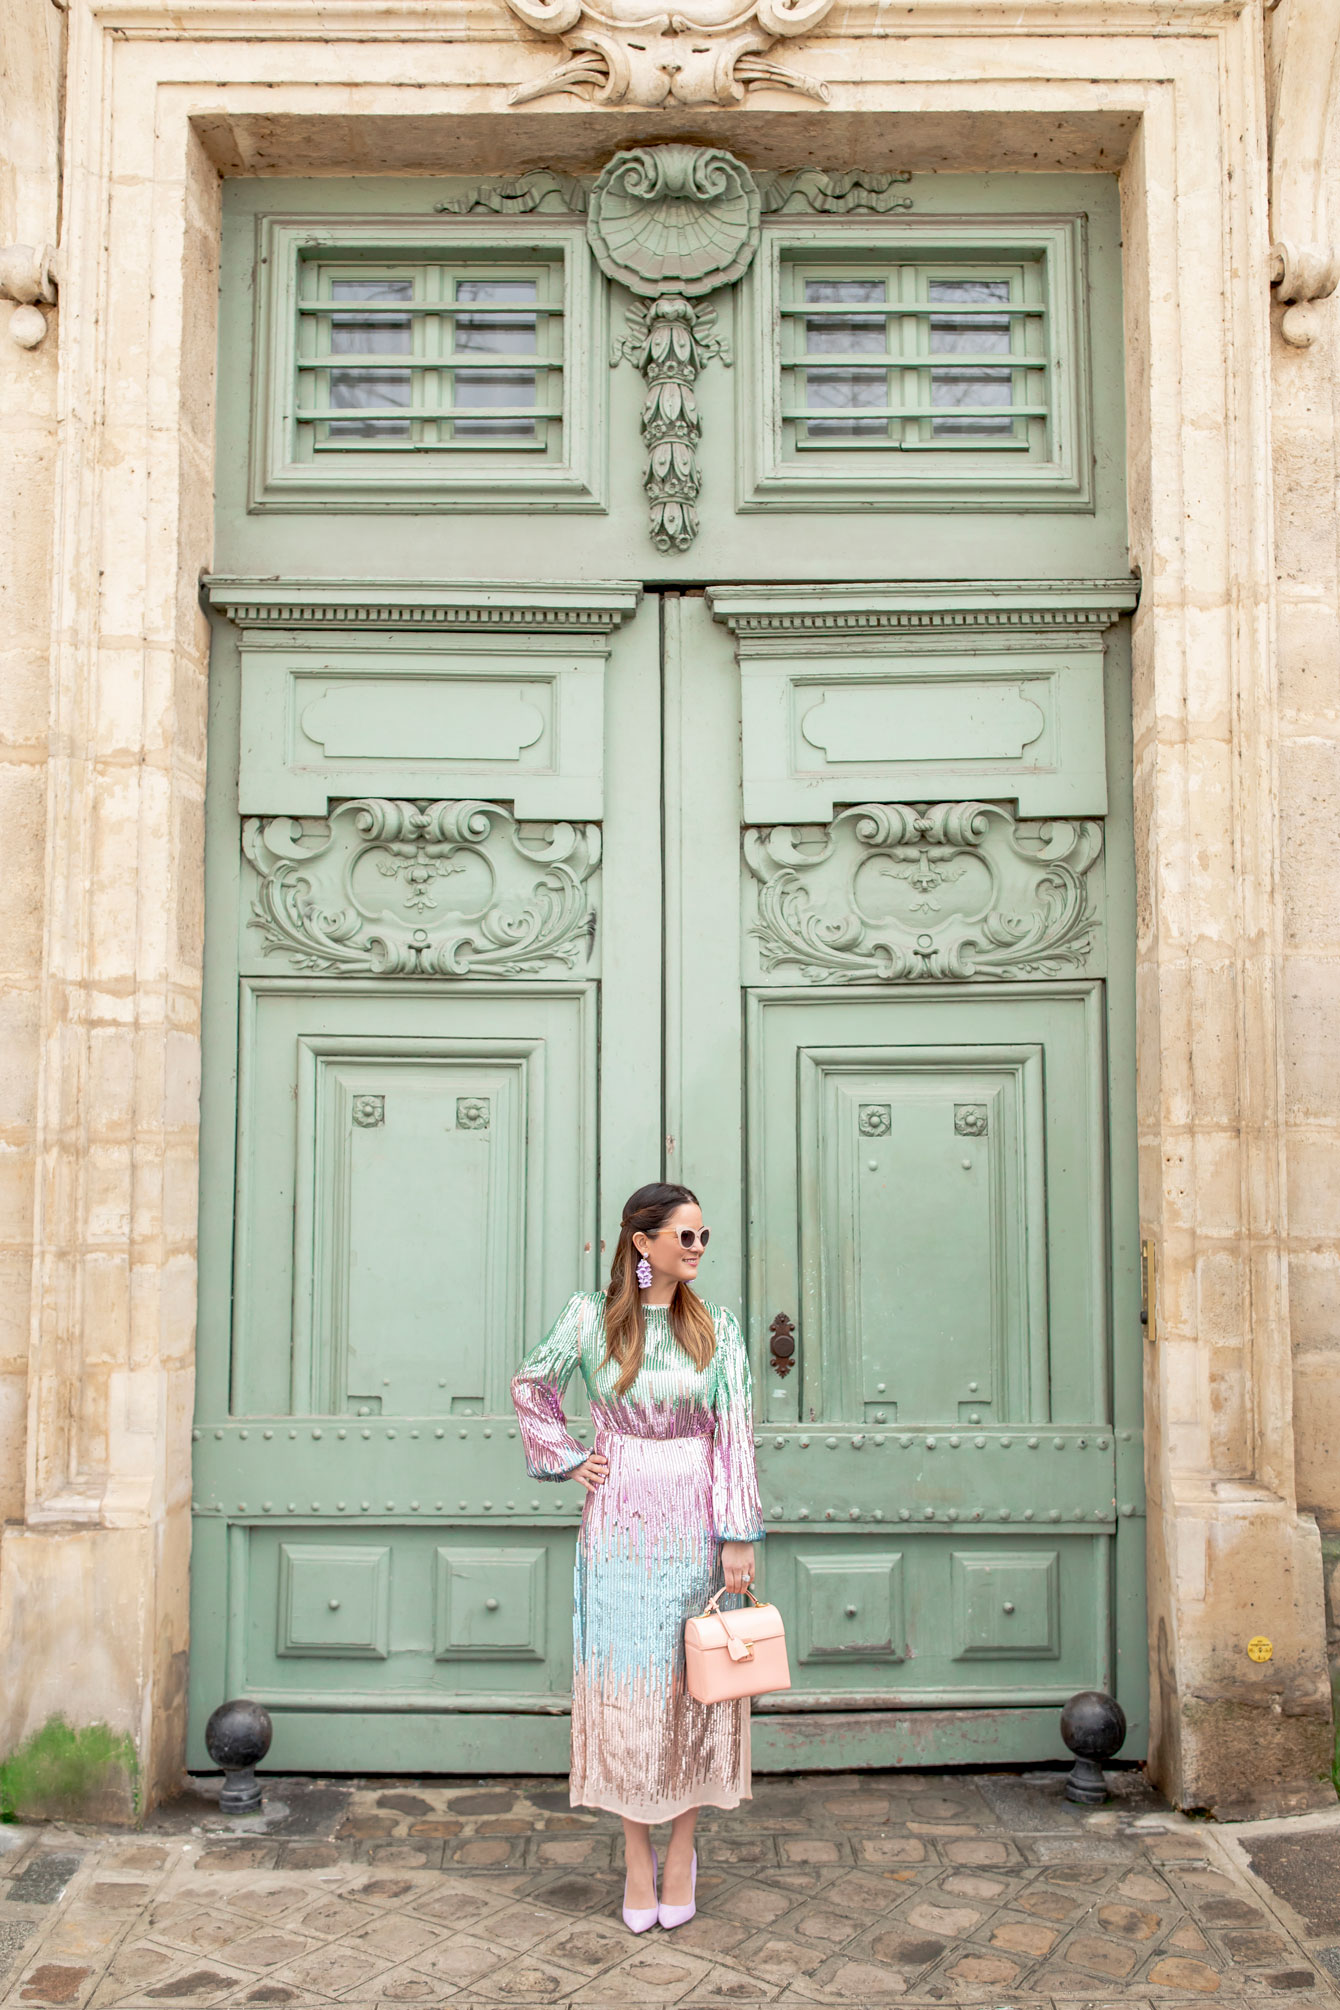 Best Paris Doors